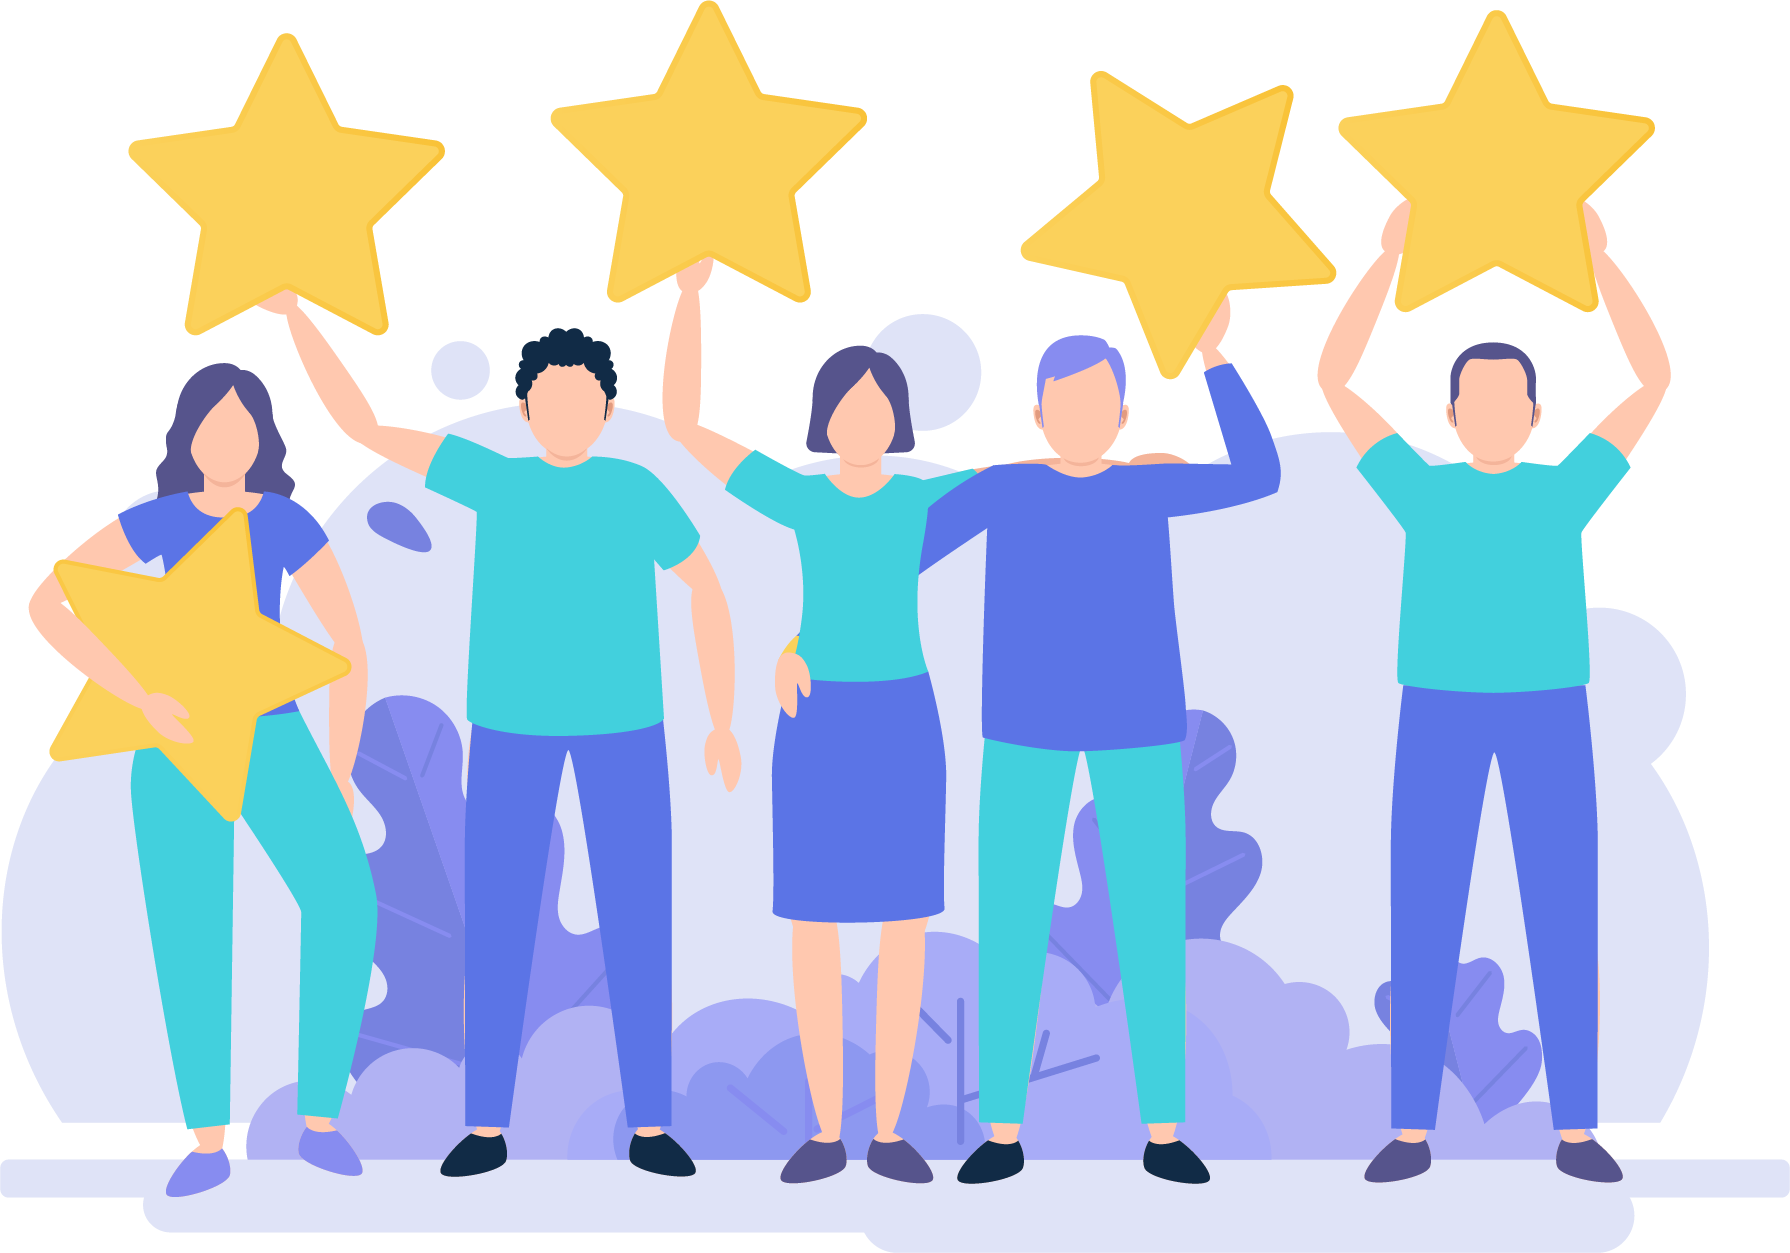 About us Ramresearch five people holding review stars